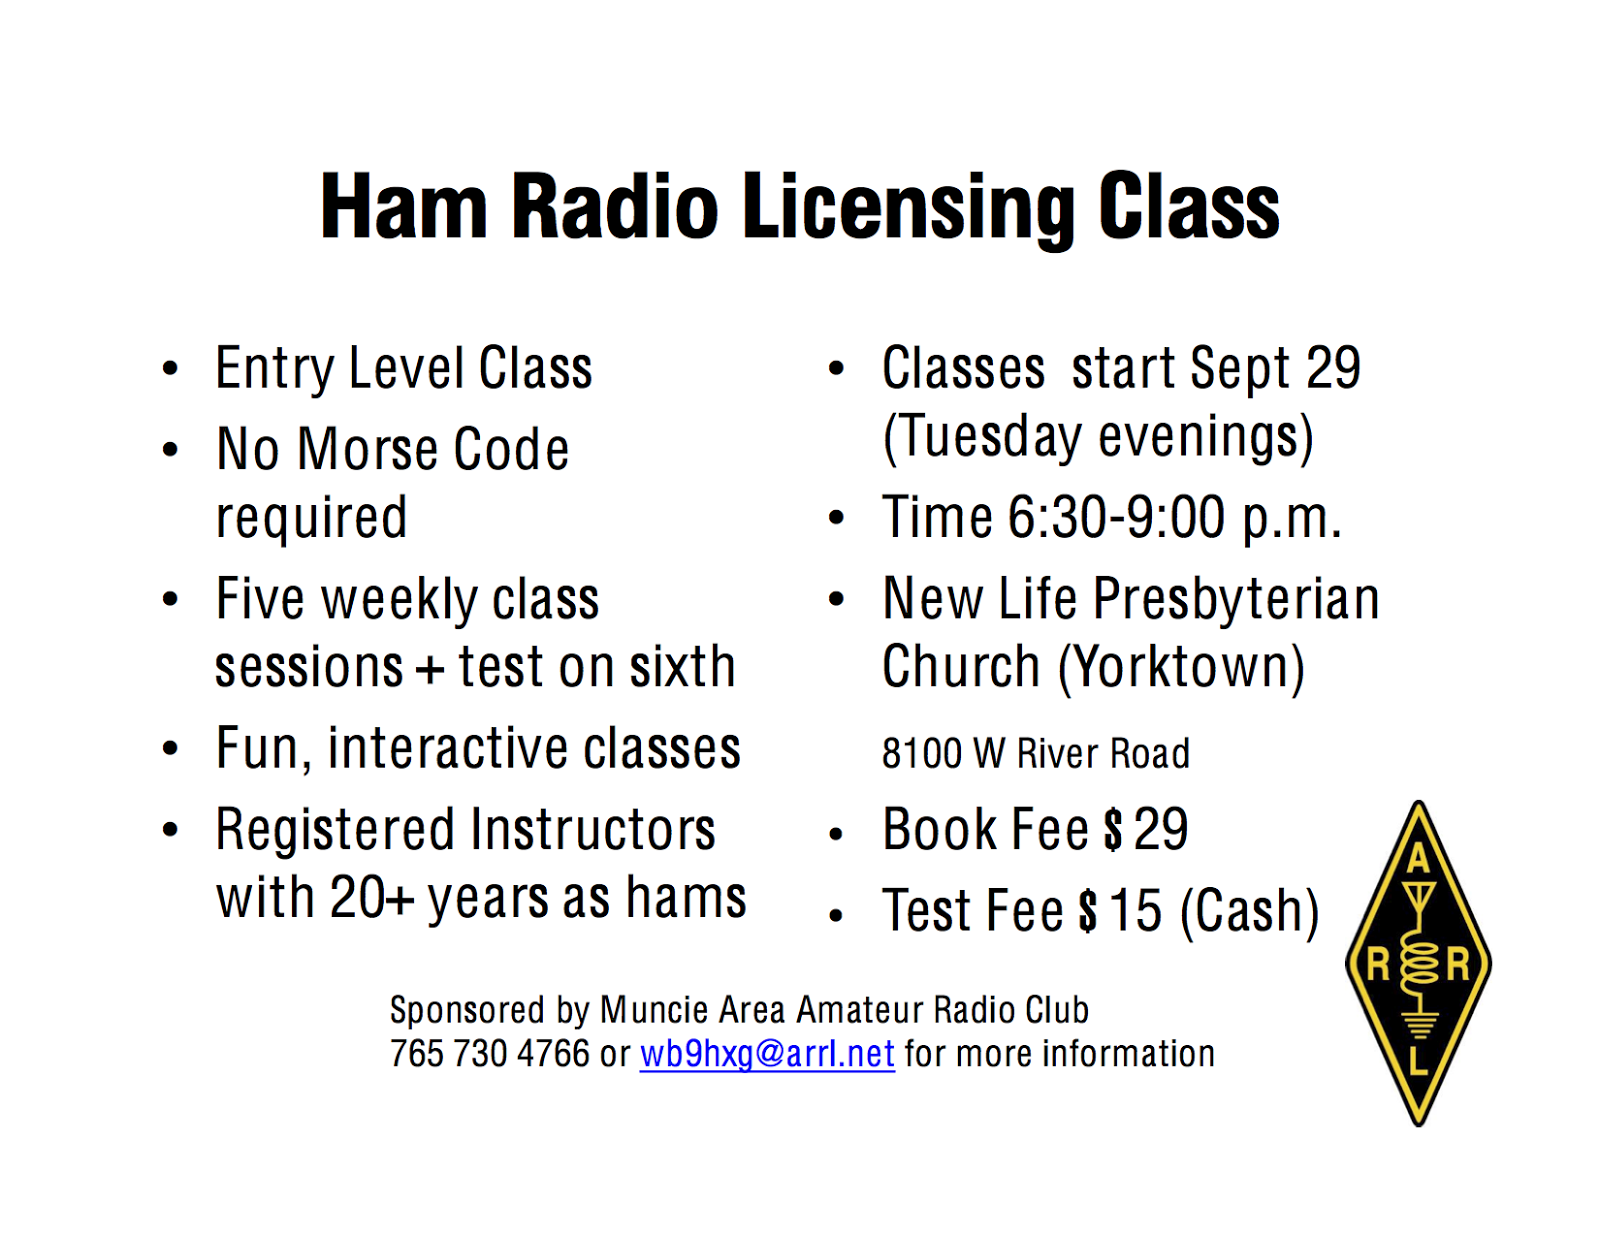 Muncie area amateur radio club tech license class coming up tech license class coming up xflitez Image collections